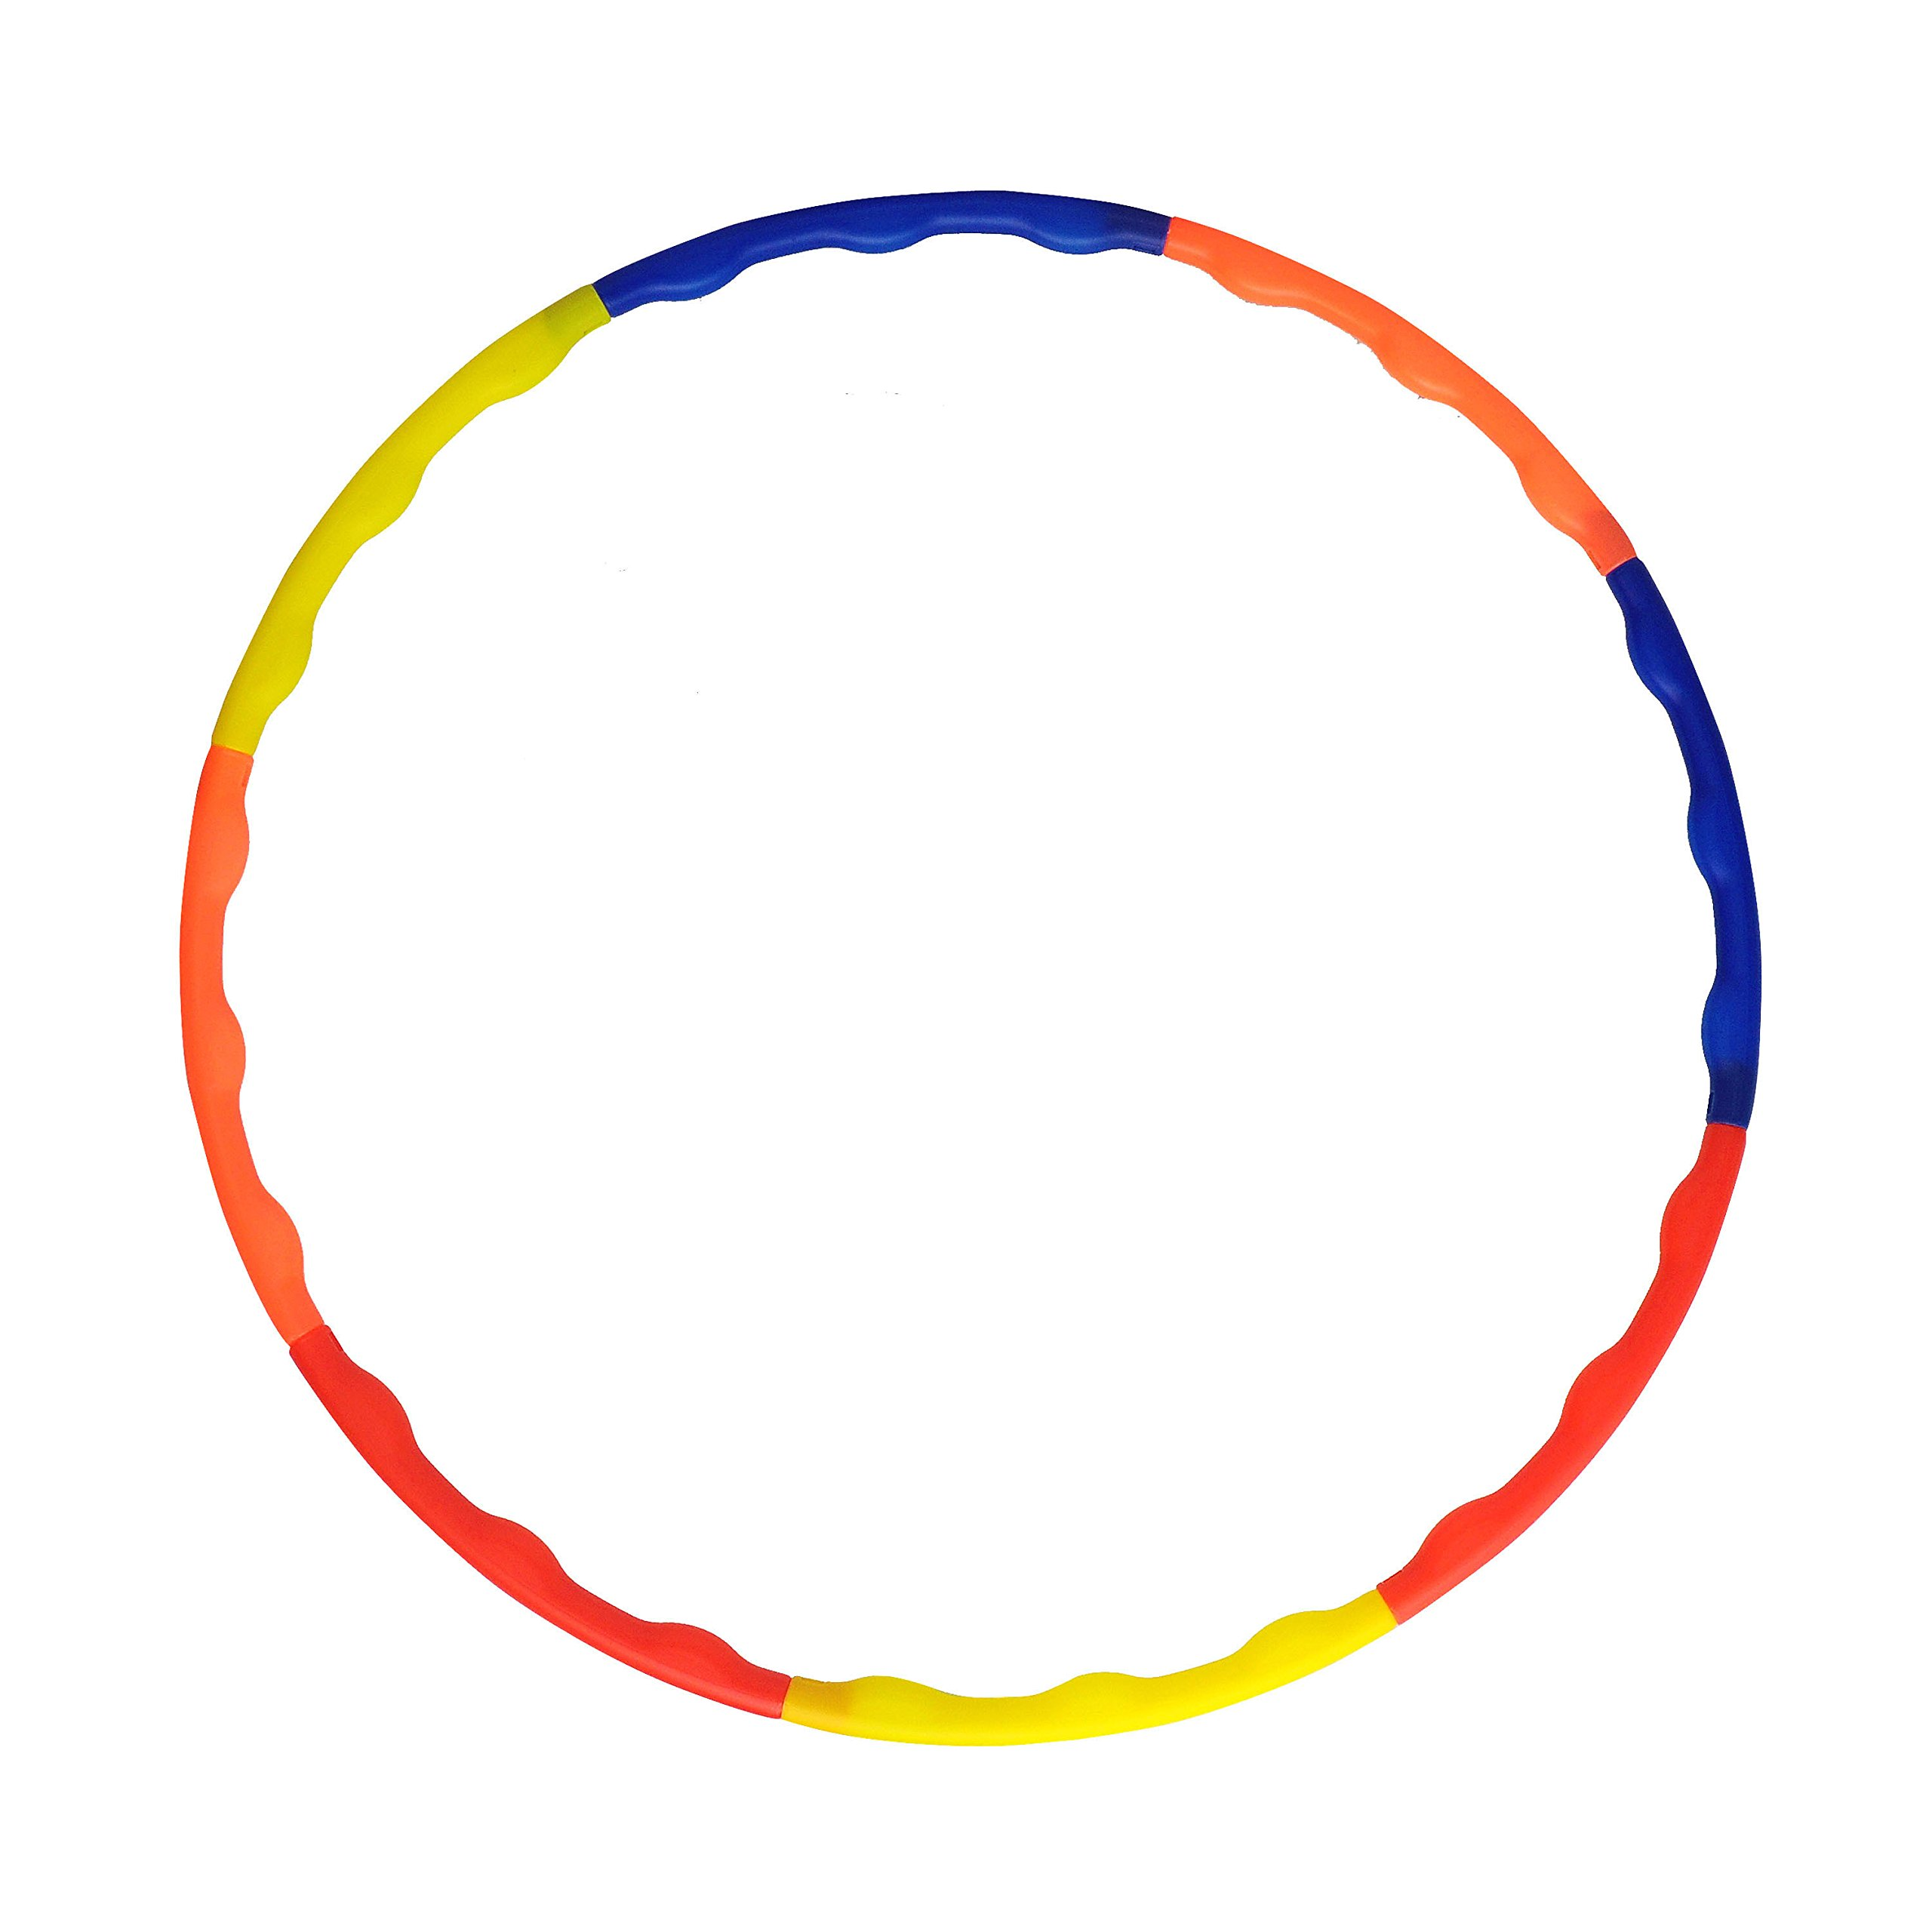 Grazzo Adults Hula Hoop Fitness Fun Waterproof Plastic Collapsible in 8 Pieces Multicolor